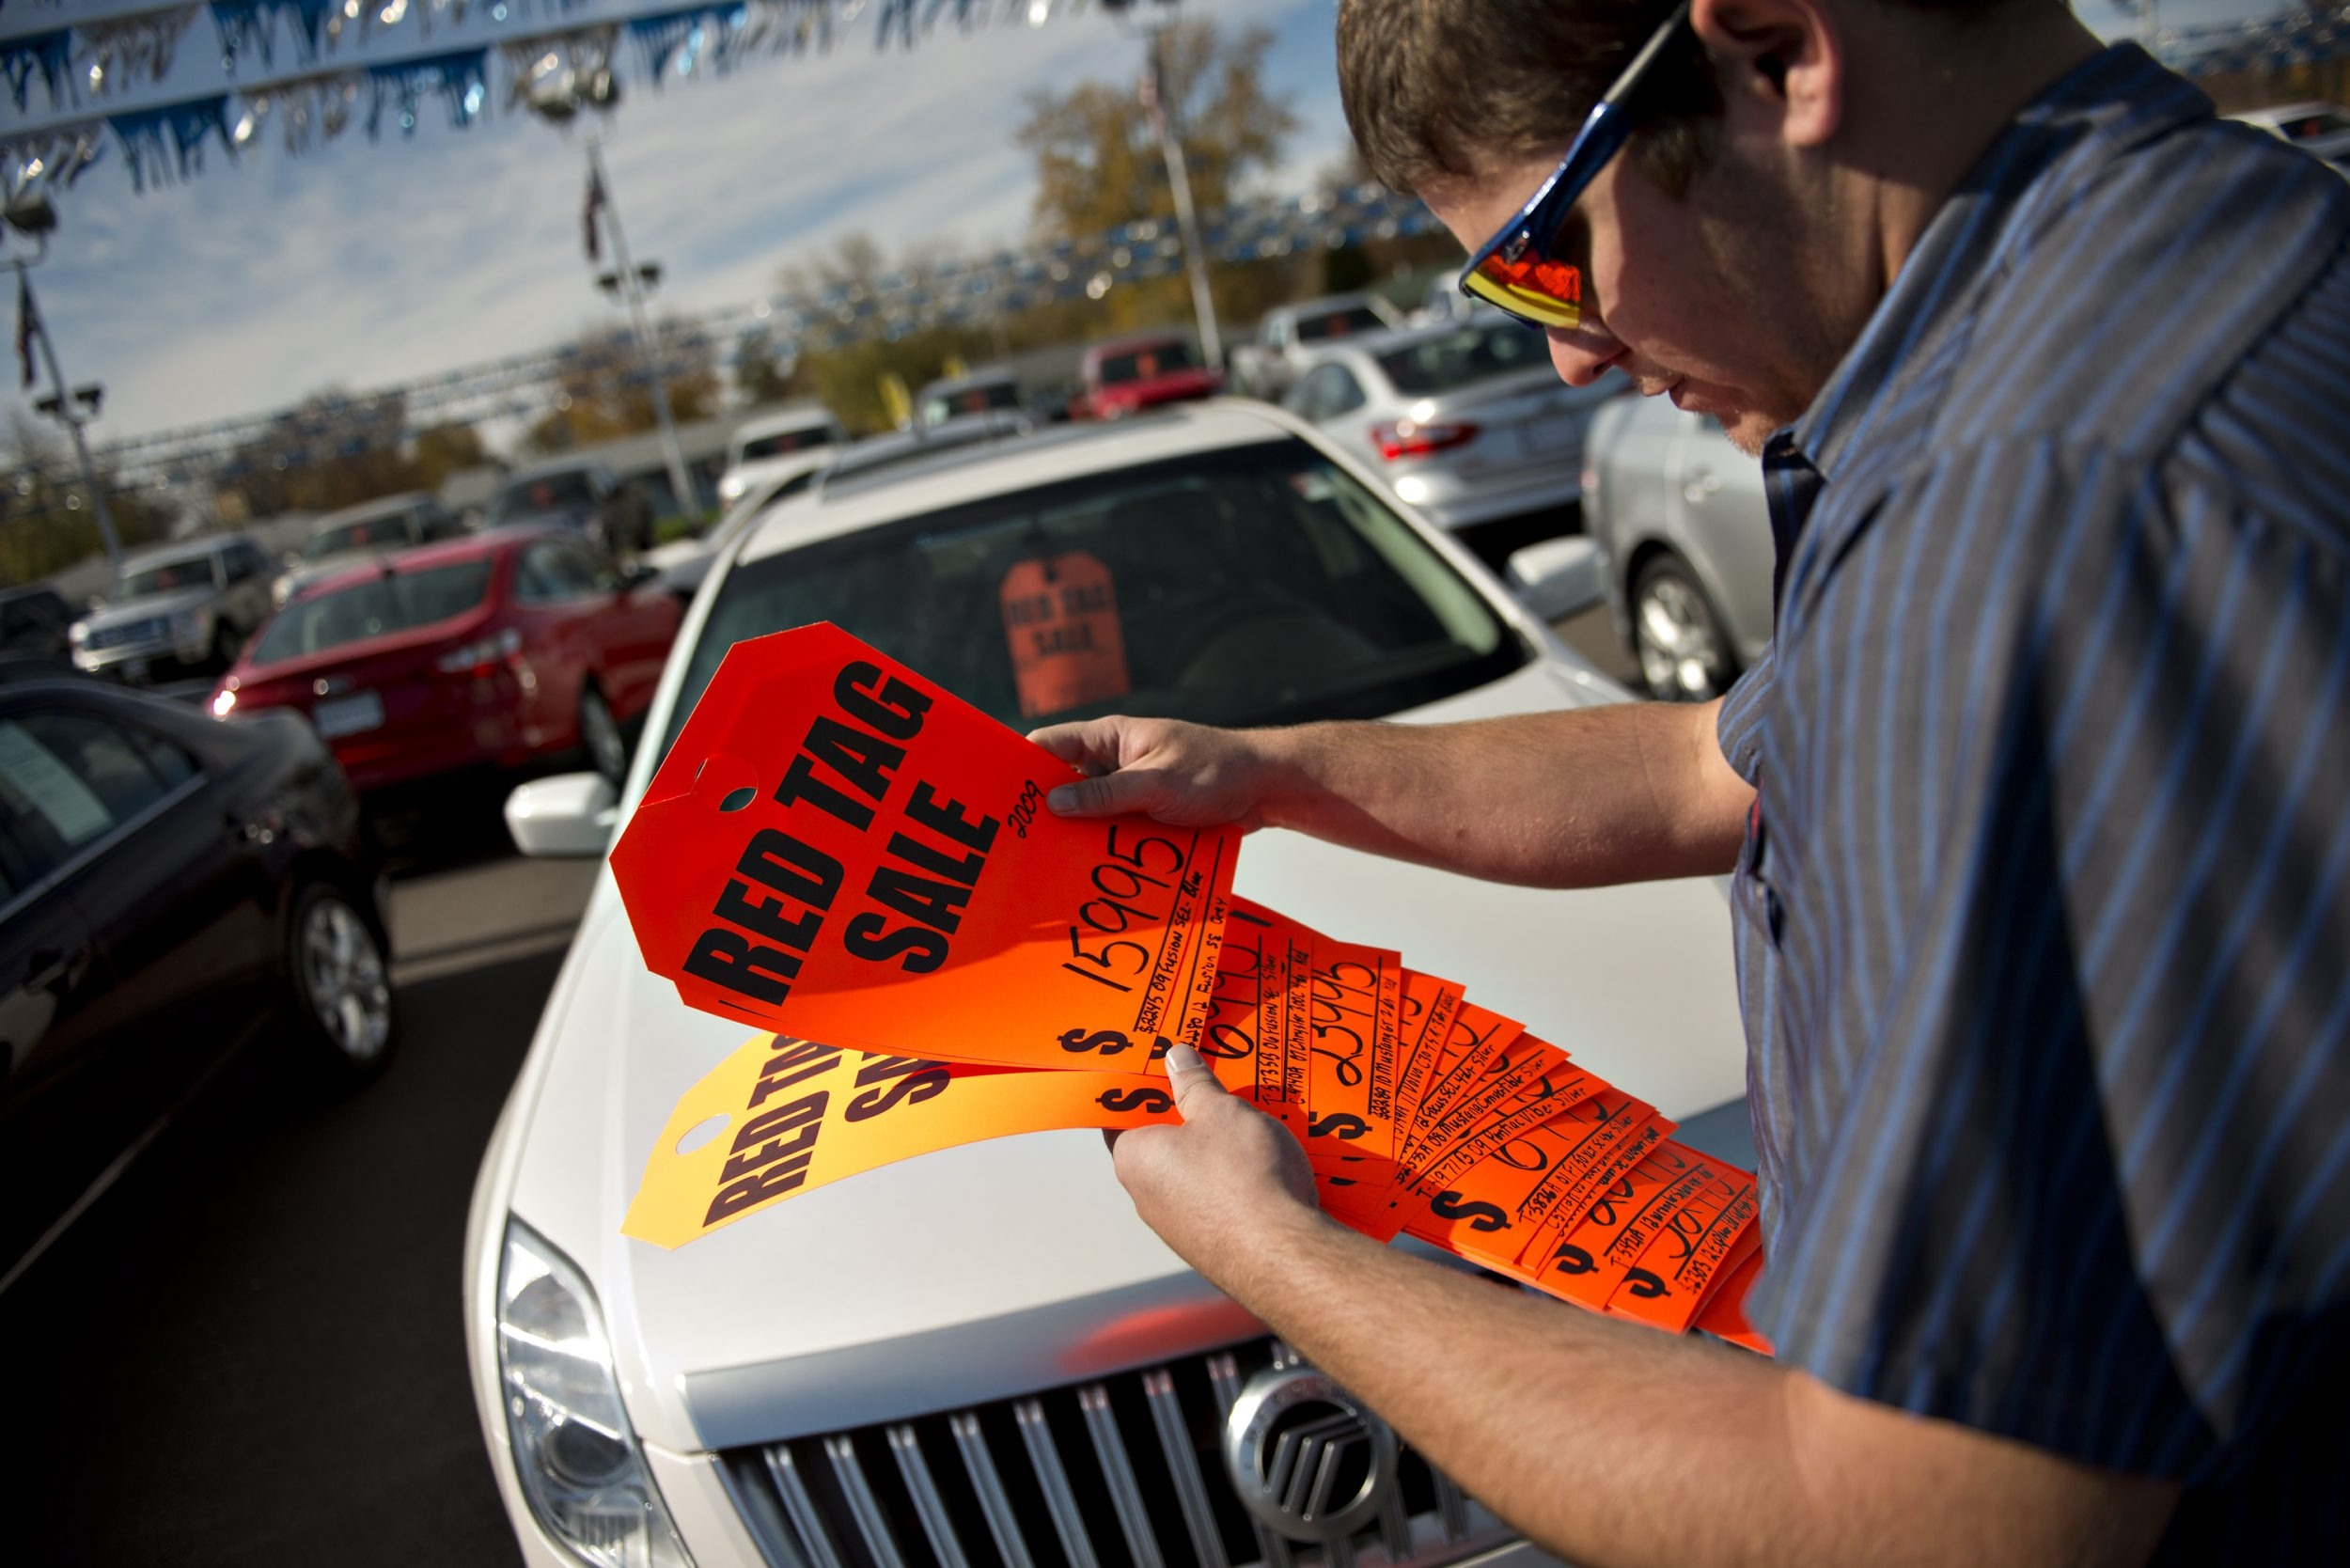 The shortage of late-model used cars has resulted in much higher prices, in some cases making it cheaper to buy new.